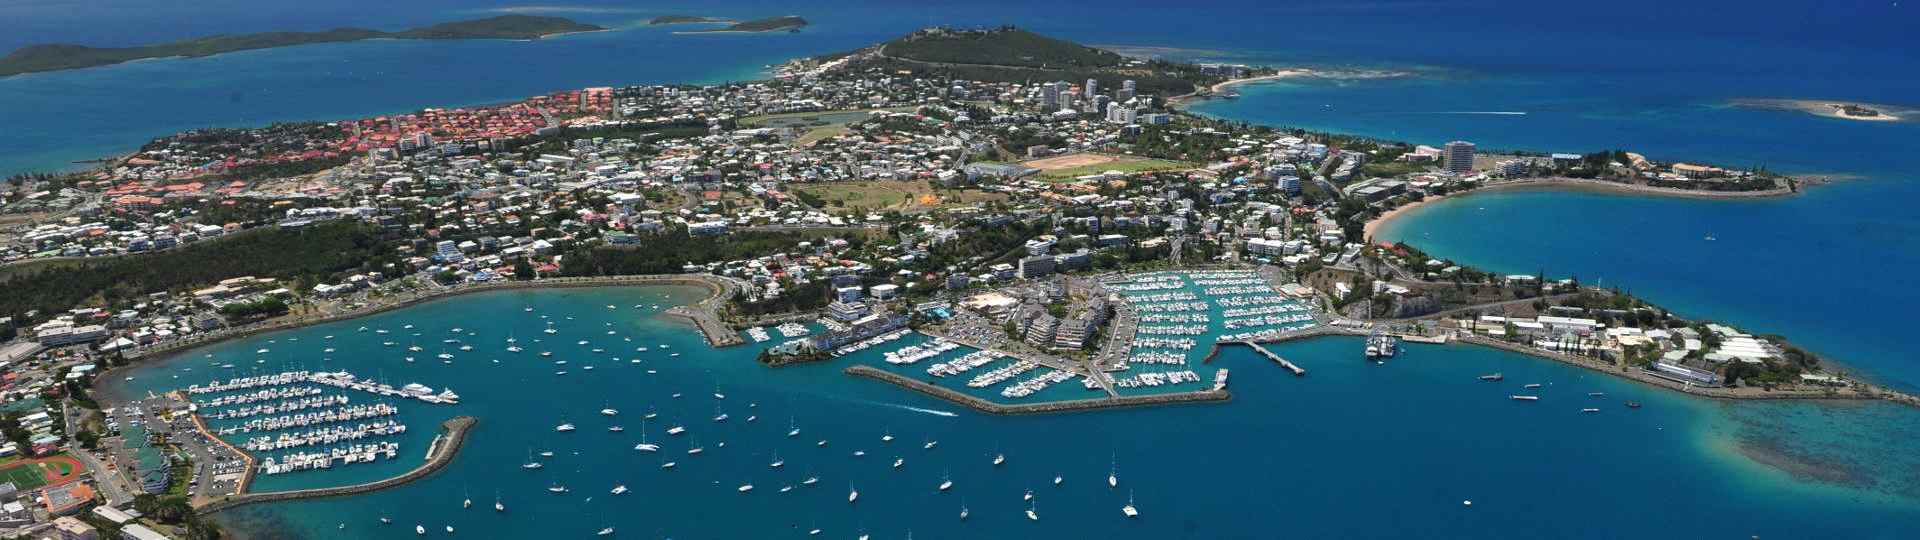 Marina Noumea South Province New Caledonia